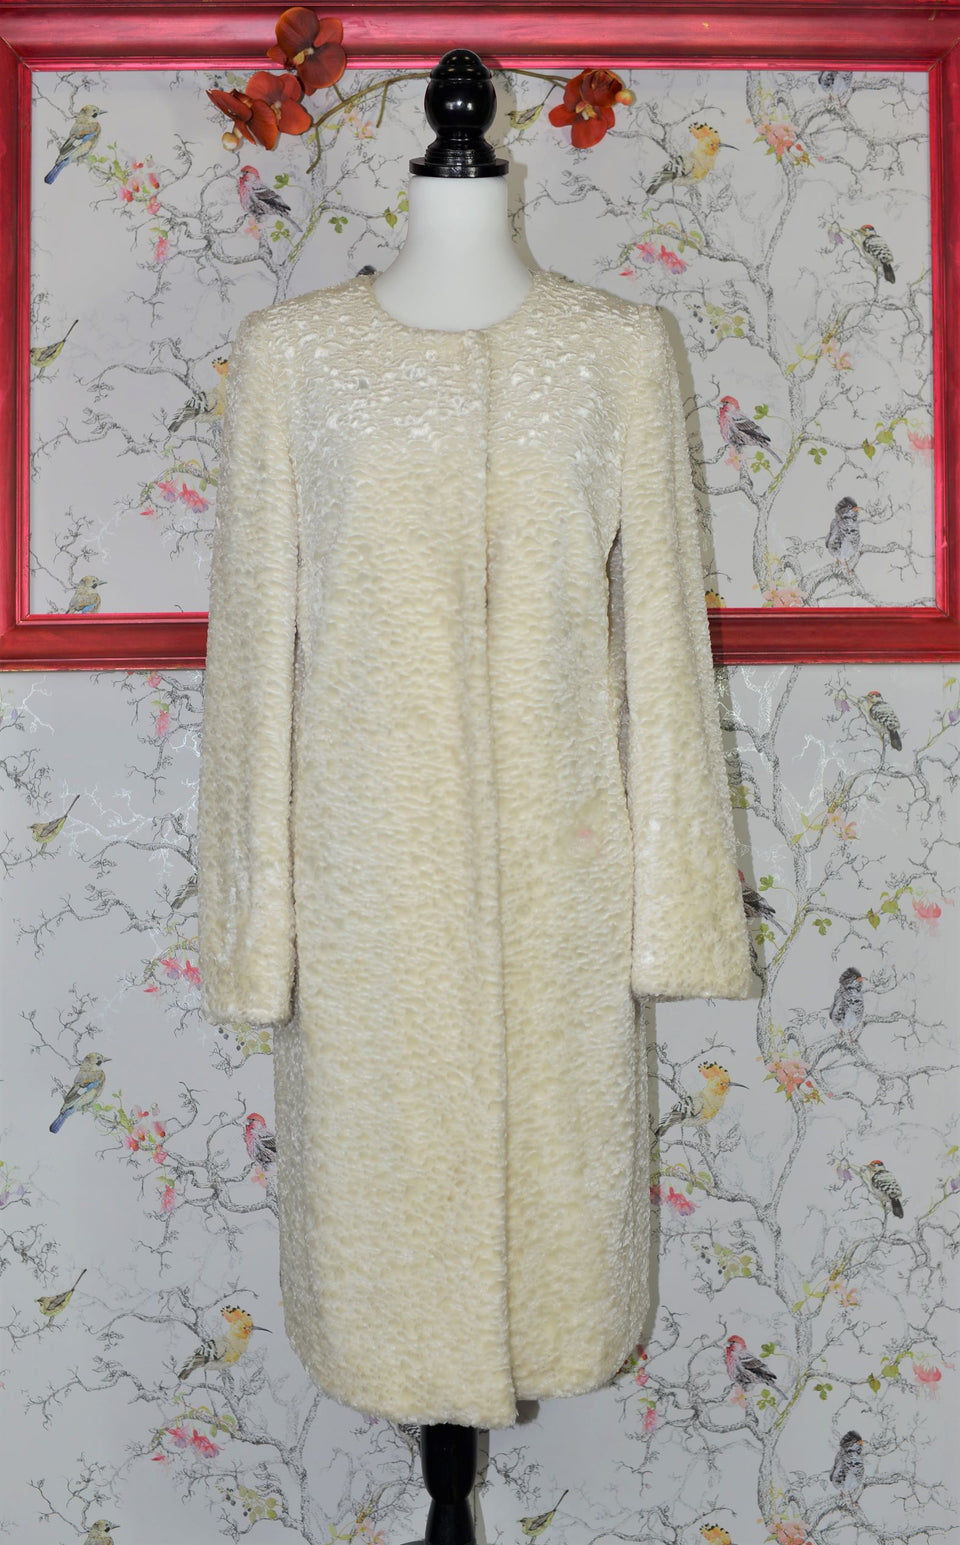 KAREN MILLEN Women's Soft White Faux Lambswool Coat. Size S. Pre-loved.